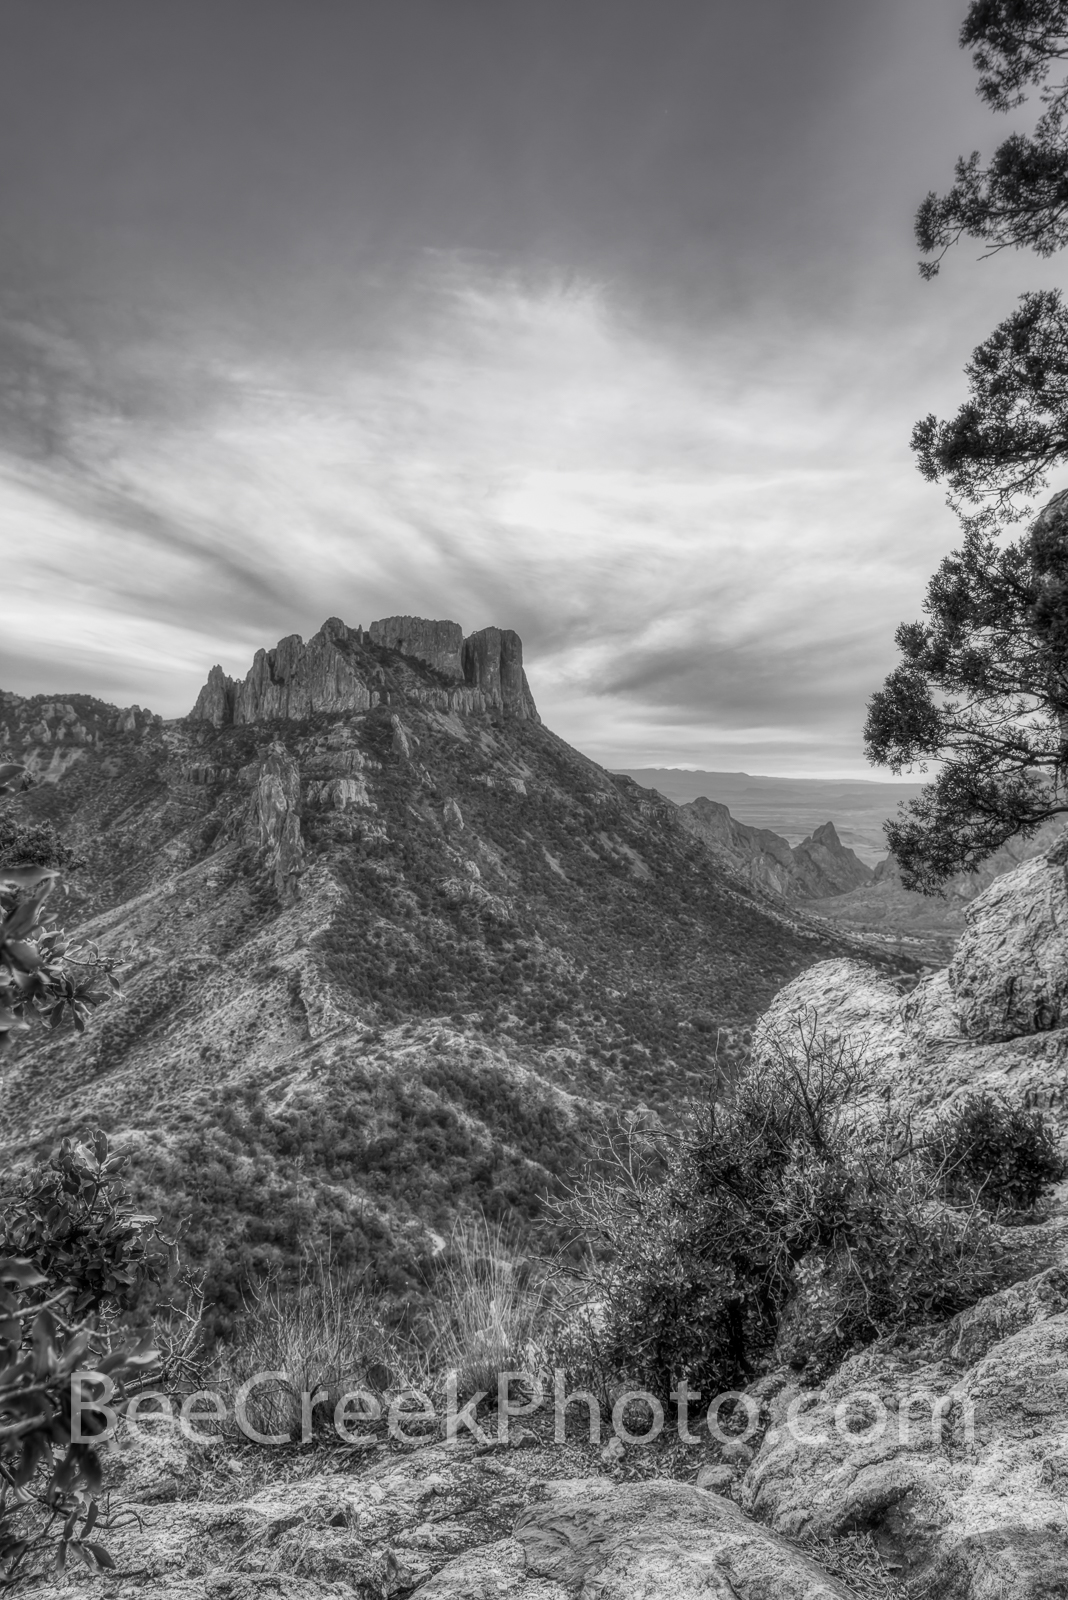 Big Bend National Park, Lost mine trail,black and white, bw, mountains, scenic, vista, colorful skys,Travel, Leisure, vacation, tourism, lifestyle, Texas, west texas, desert, nature, , photo